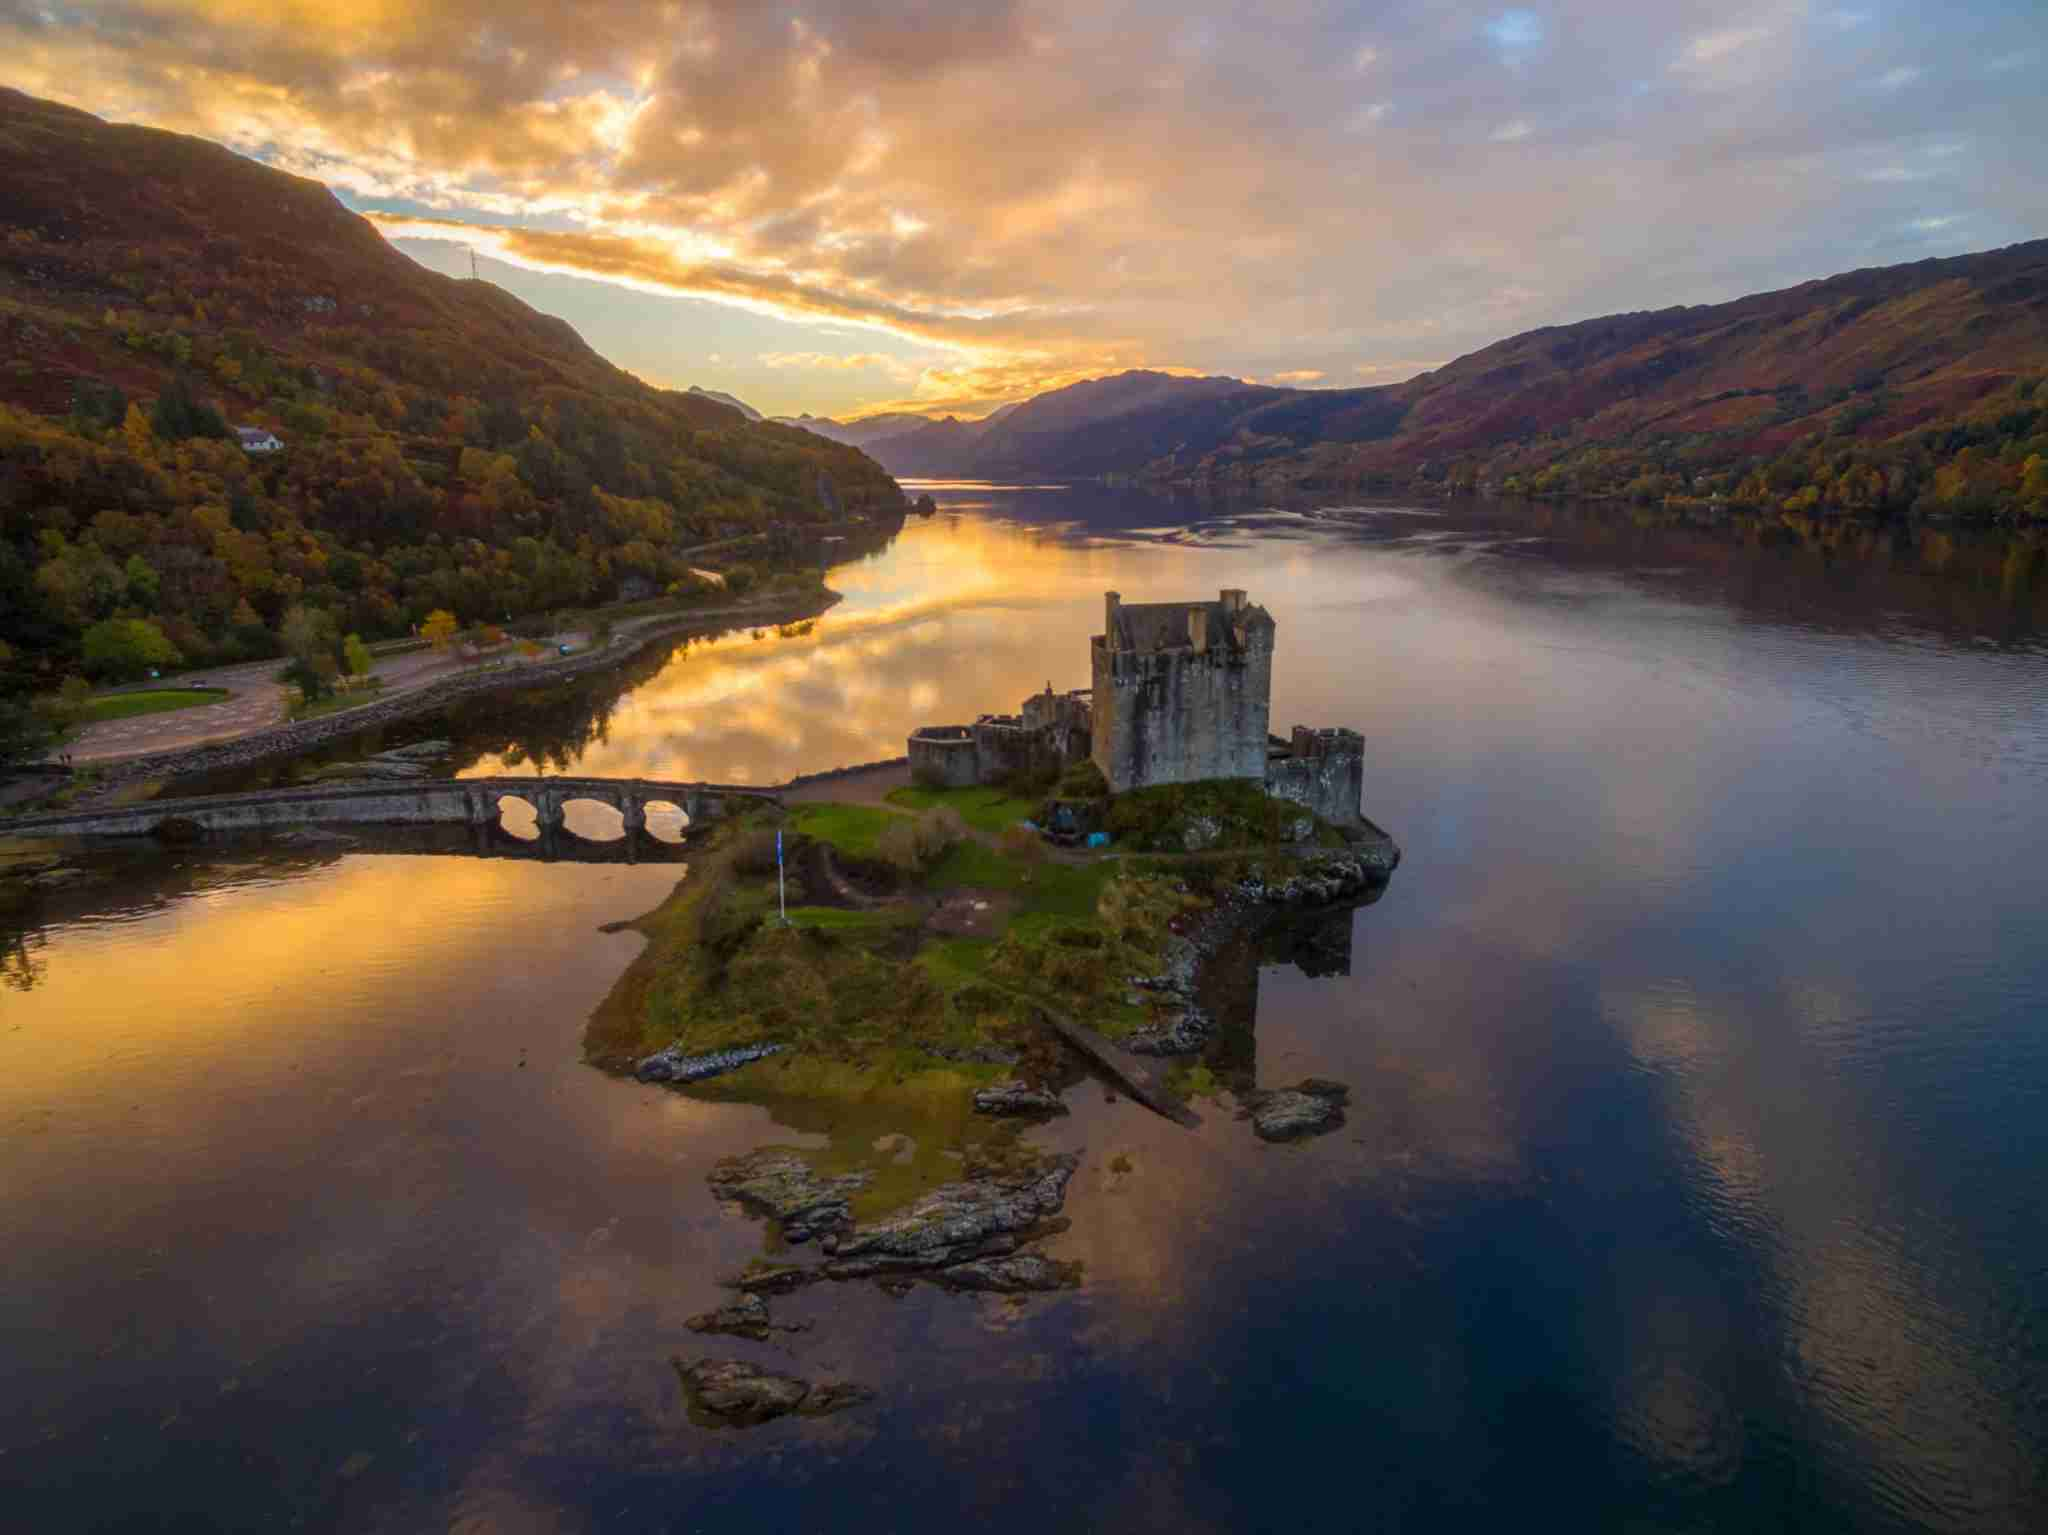 castle on an island where 3 lochs meet, dating from the 13th century. (Photo by Andrew Thomas/Getty Images)